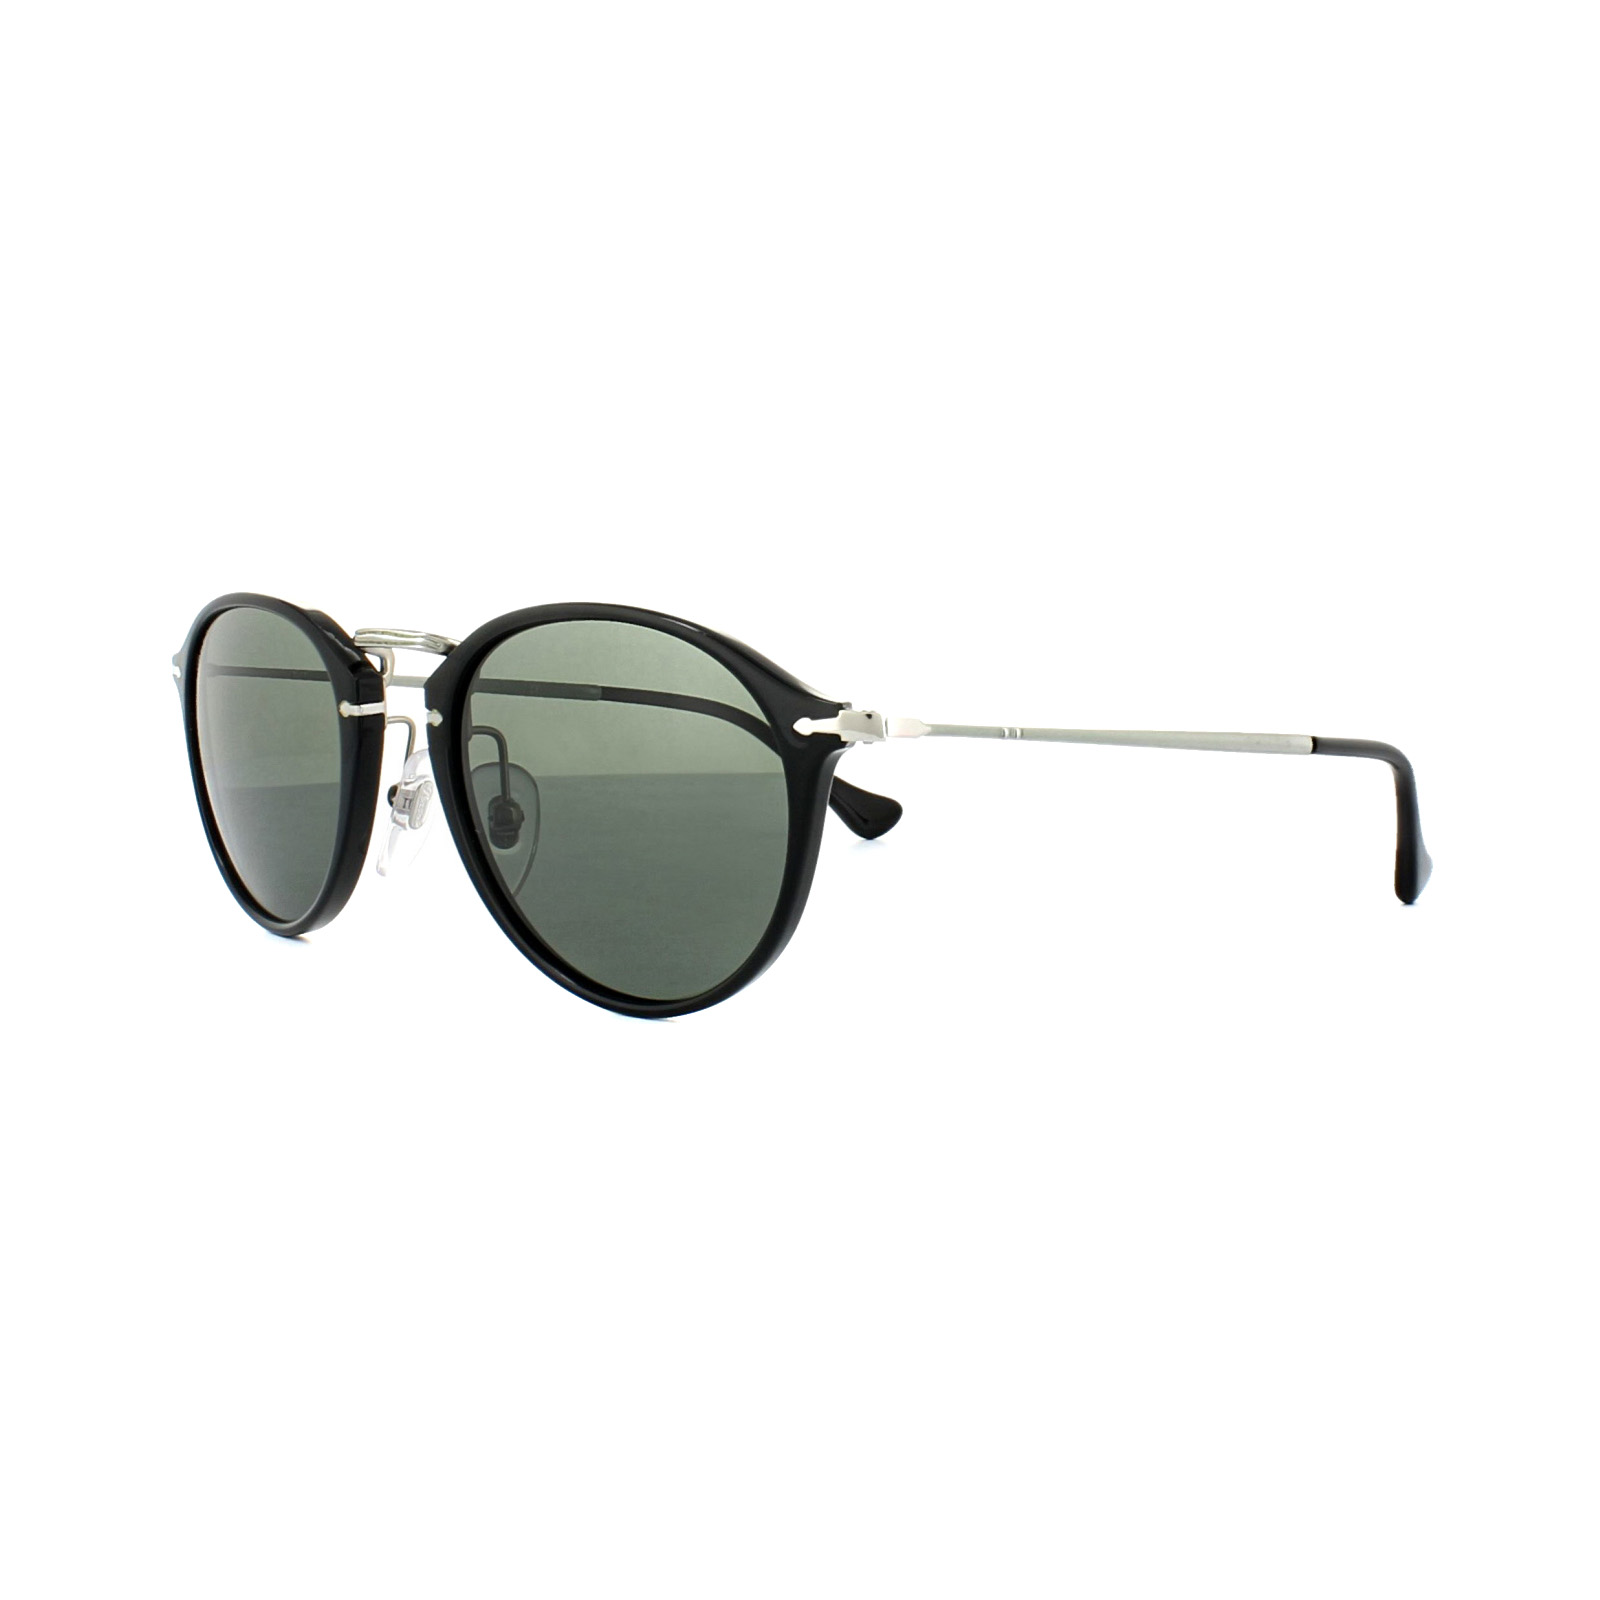 12865560923c4 Persol Sunglasses 3046 95 58 Black Green Polarized 8053672000443